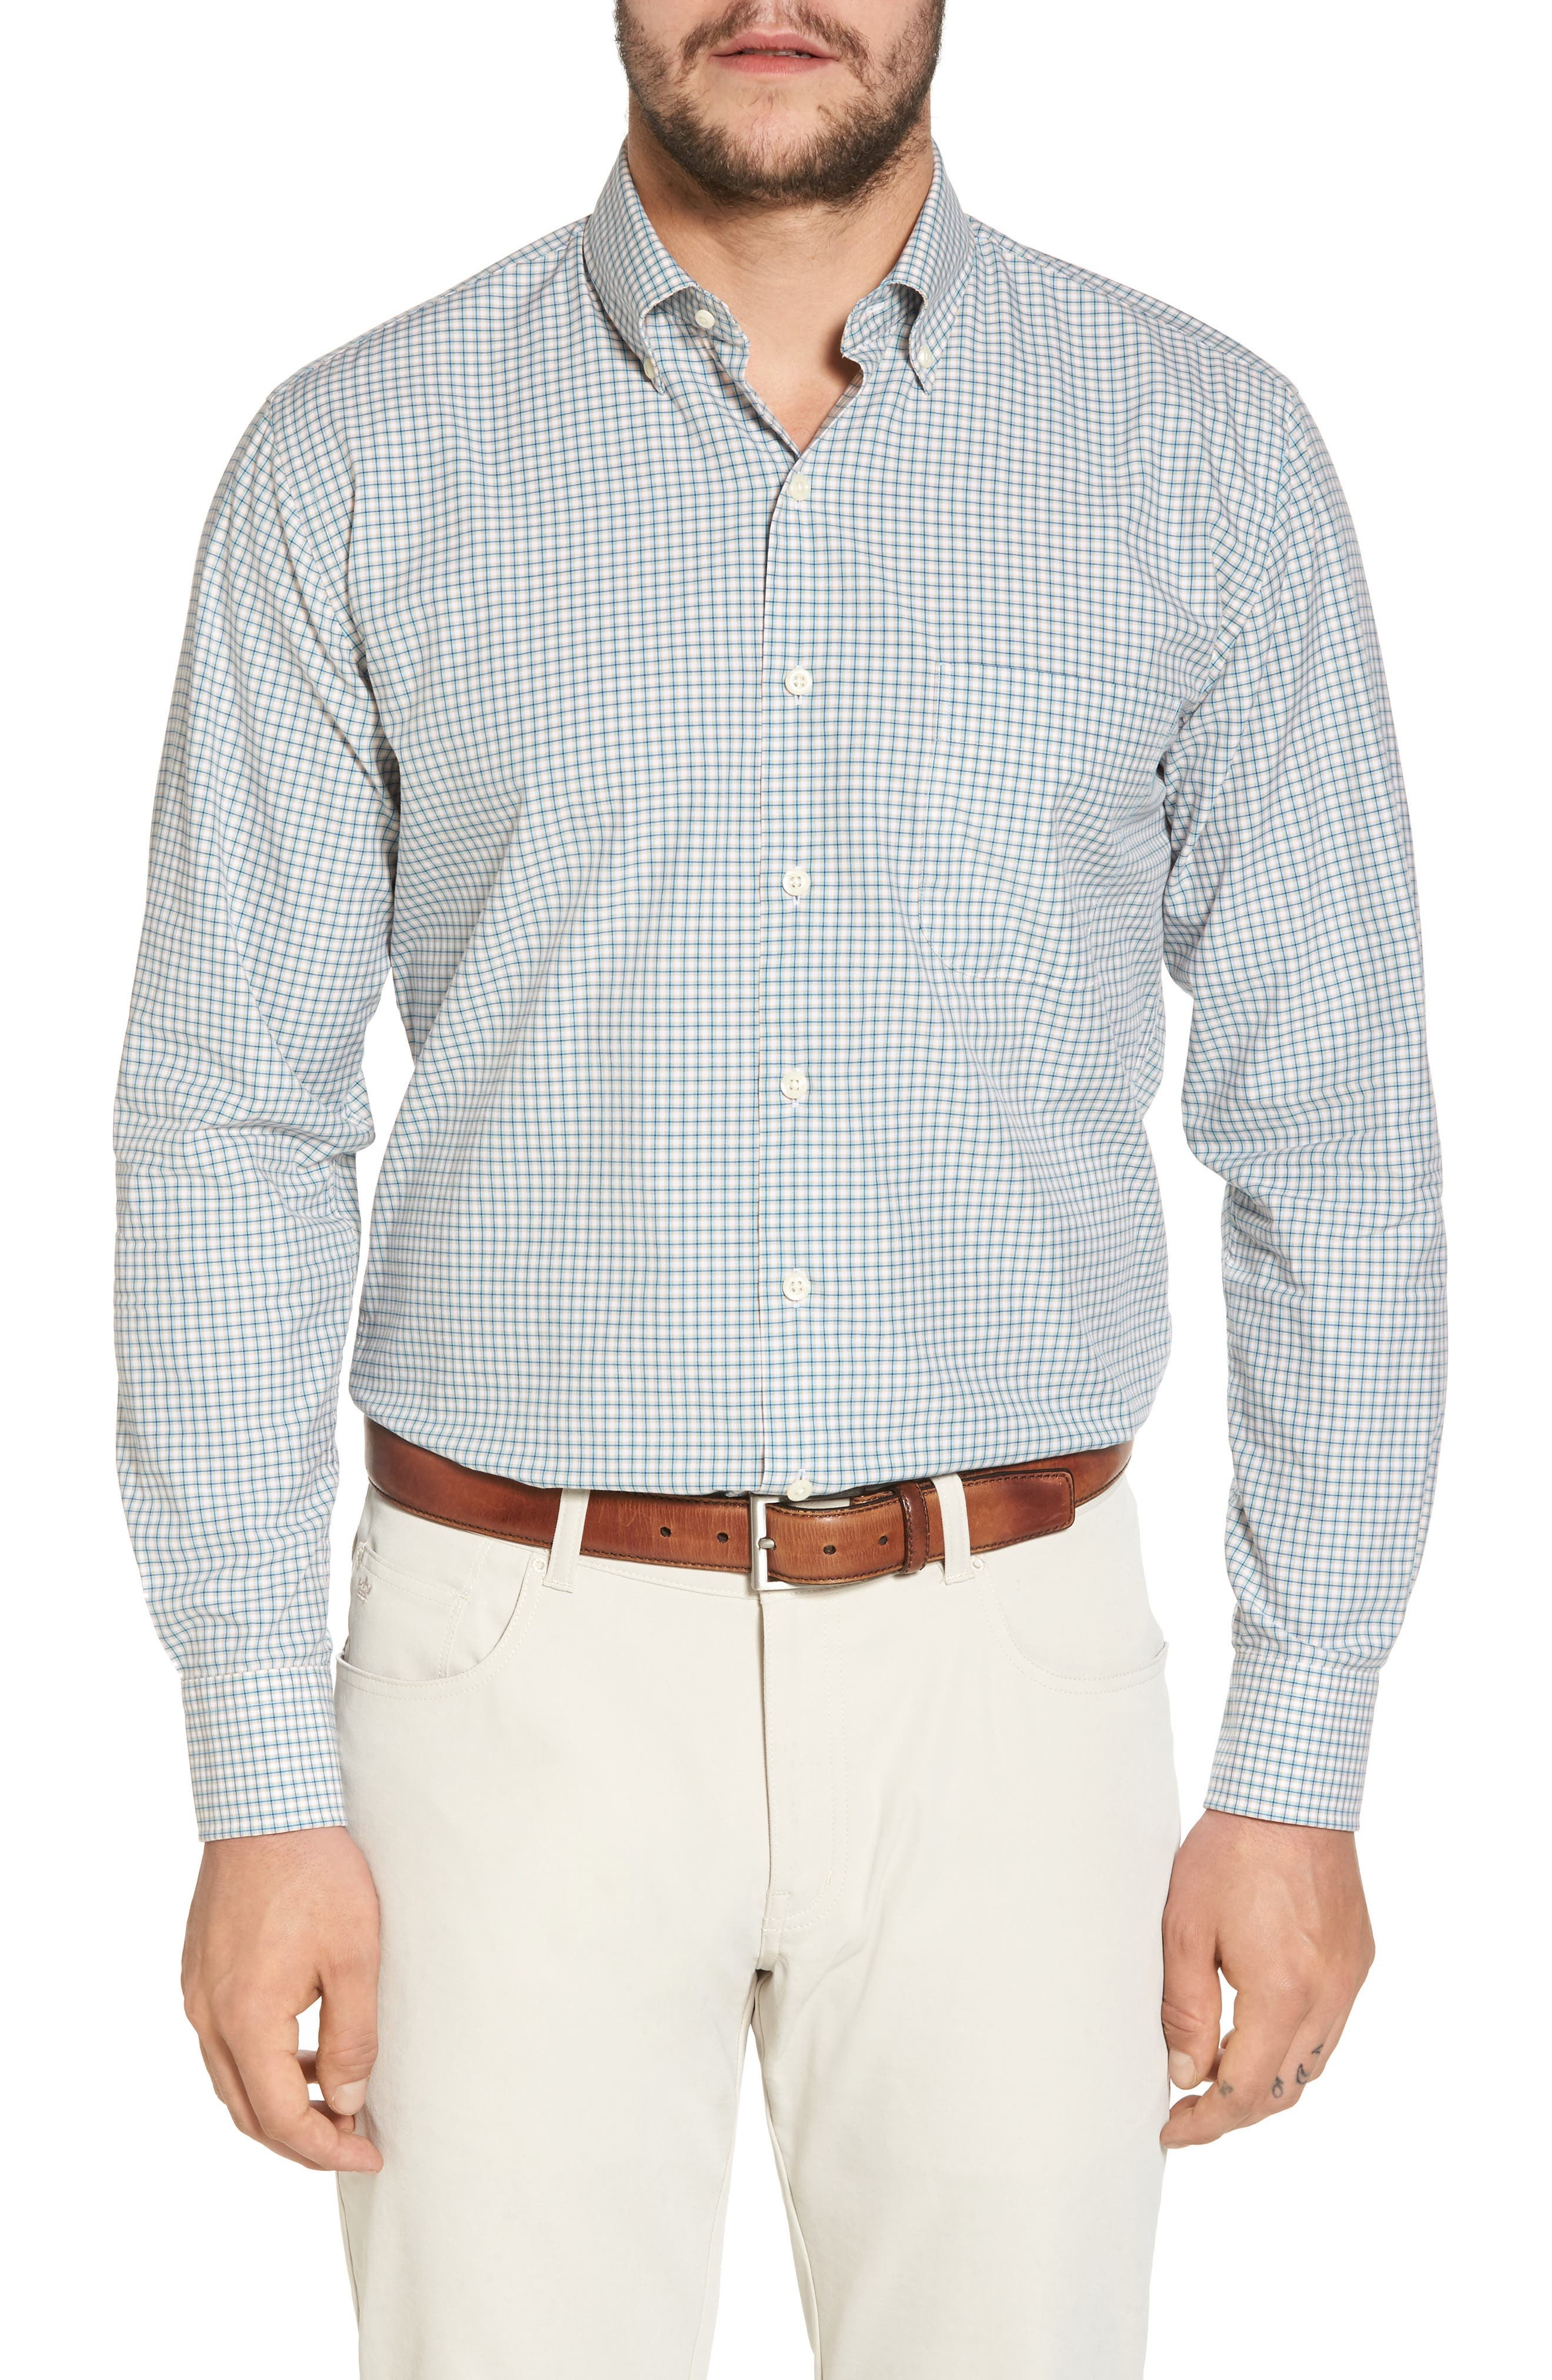 Classic Fit Alligator Check Sport Shirt,                             Main thumbnail 1, color,                             Dreamsicle